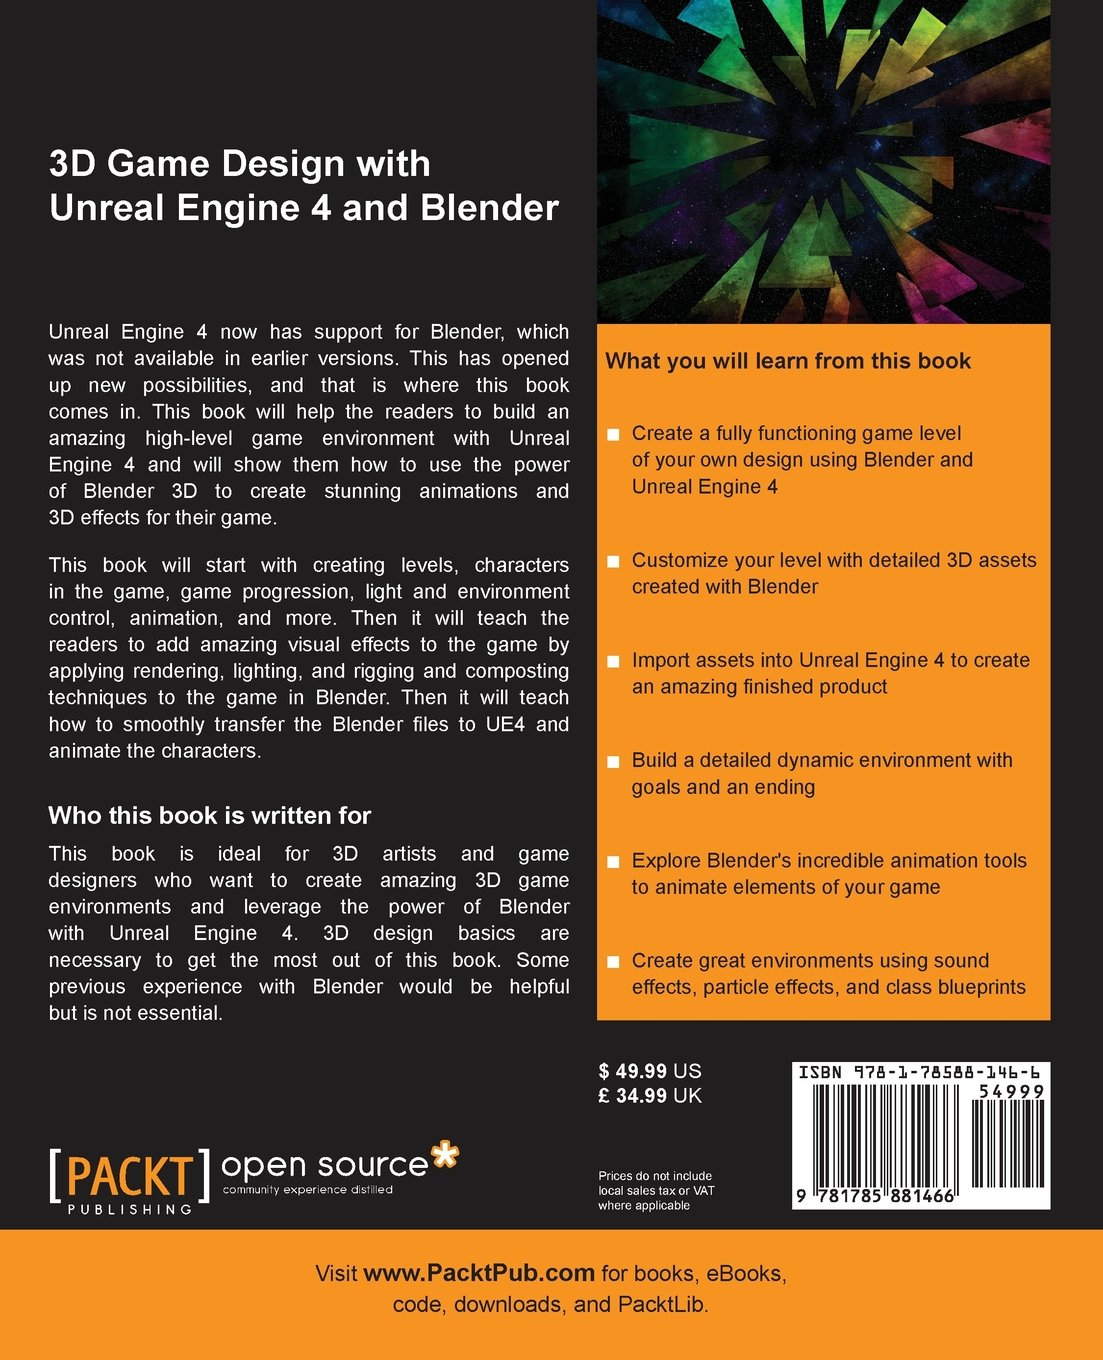 3d game design with unreal engine 4 and blender amazon justin 3d game design with unreal engine 4 and blender amazon justin plowman libros en idiomas extranjeros malvernweather Images